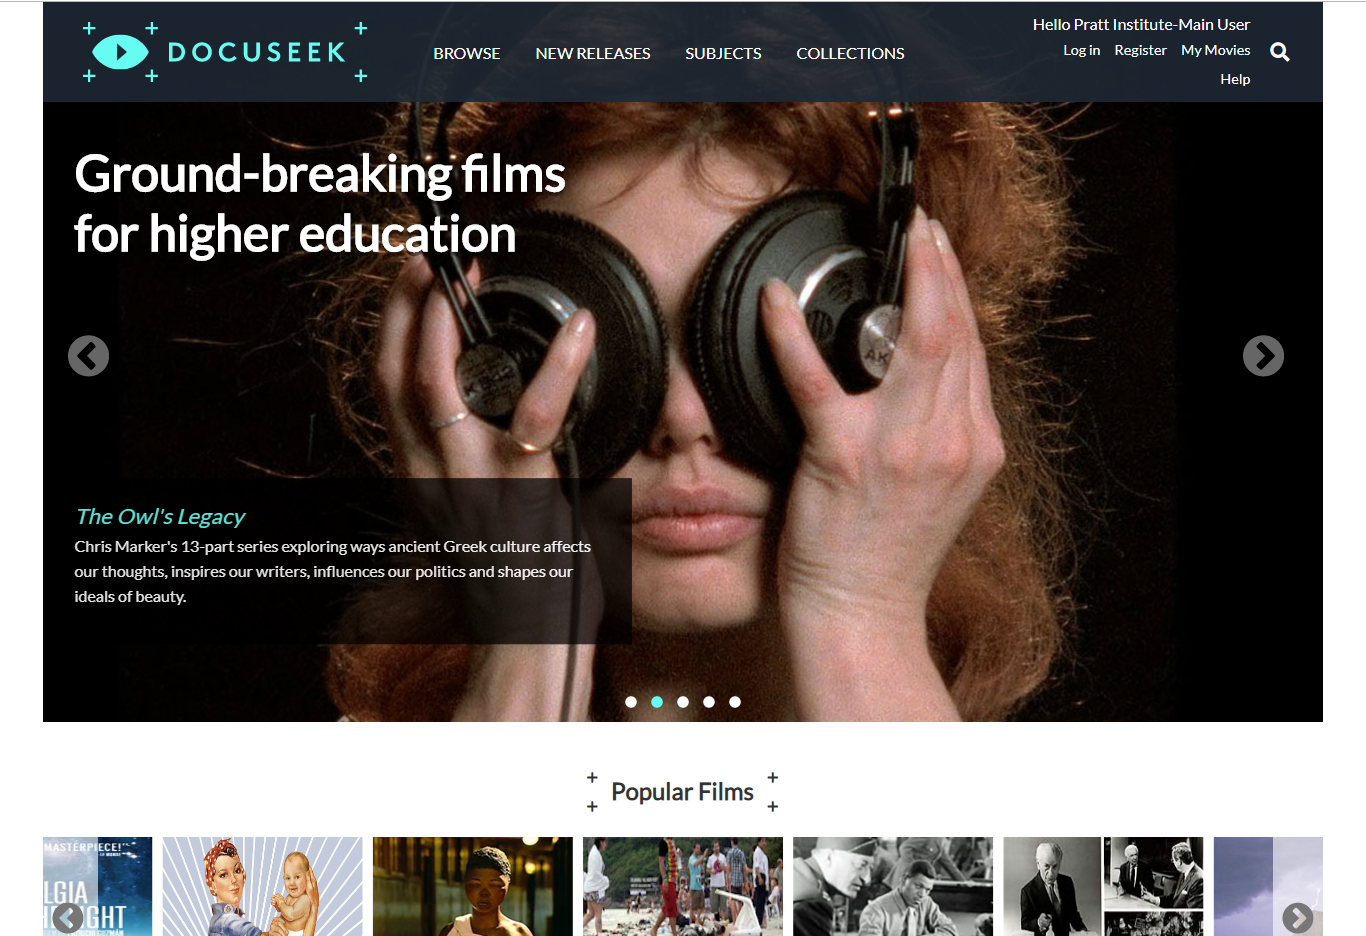 Docuseek screen capture.